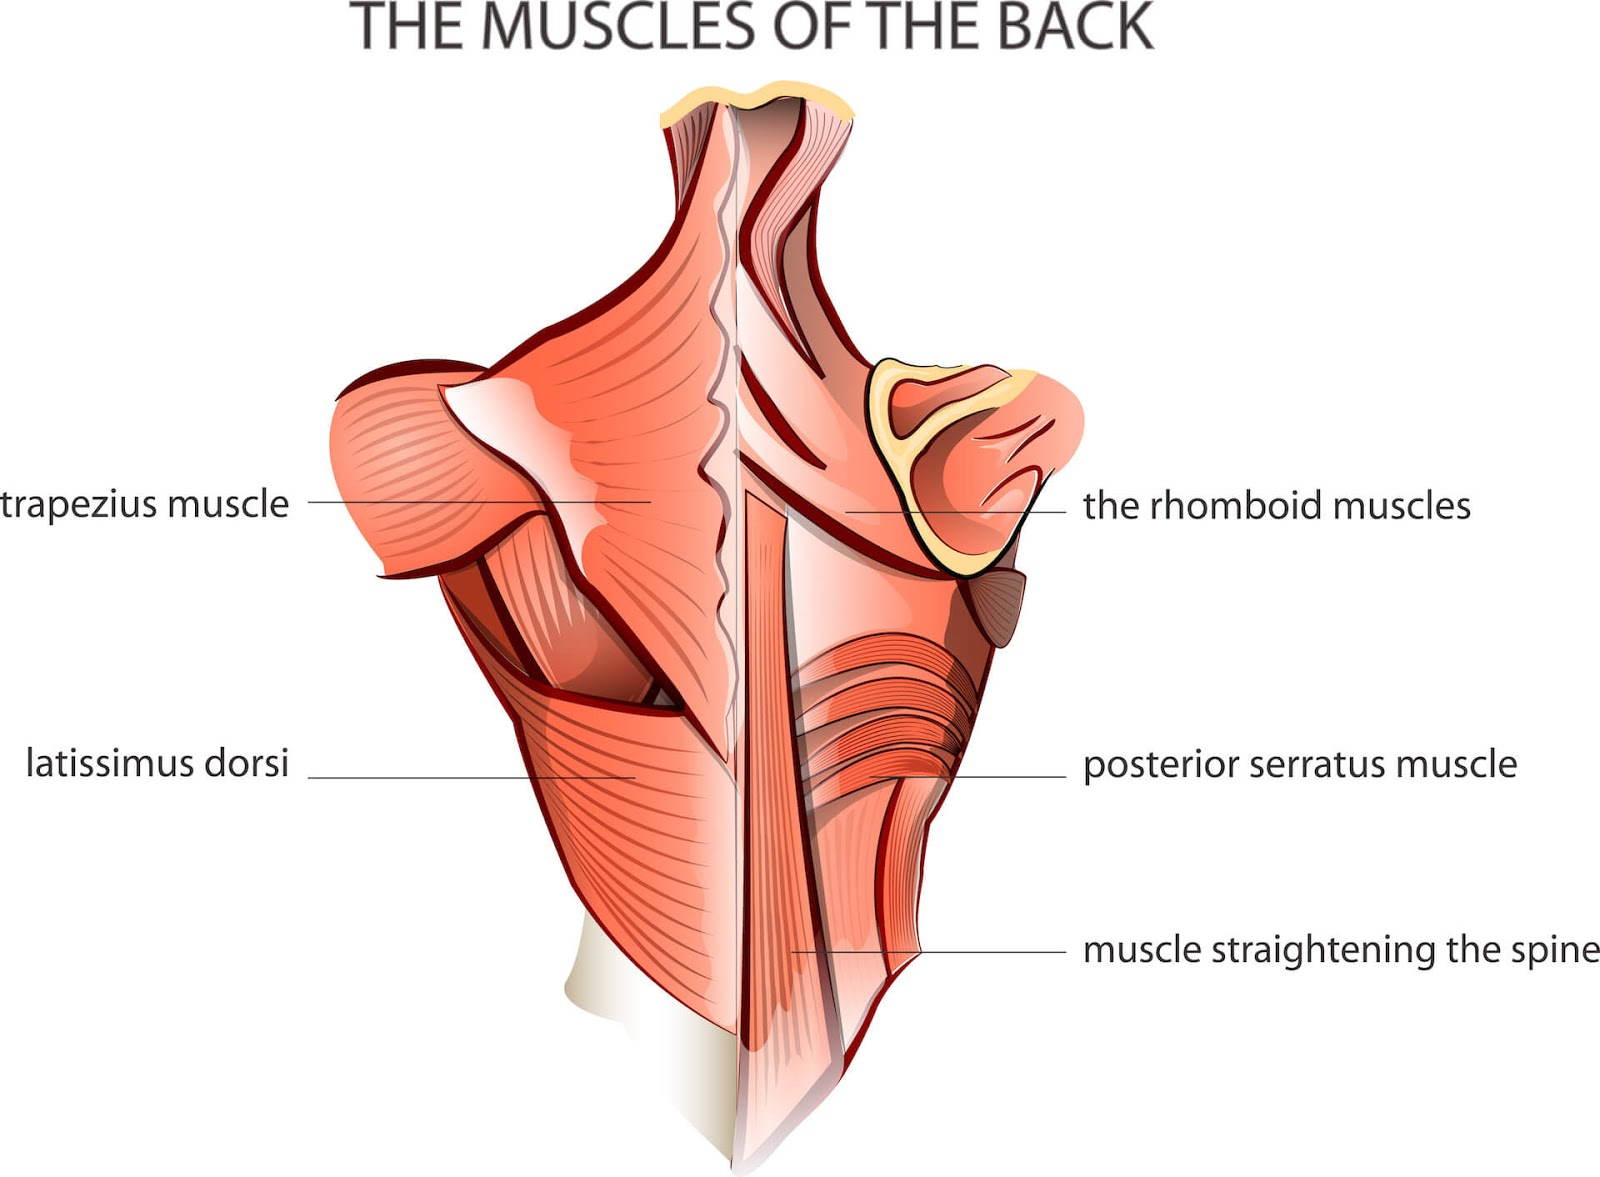 Diagram of the muscles in the back.